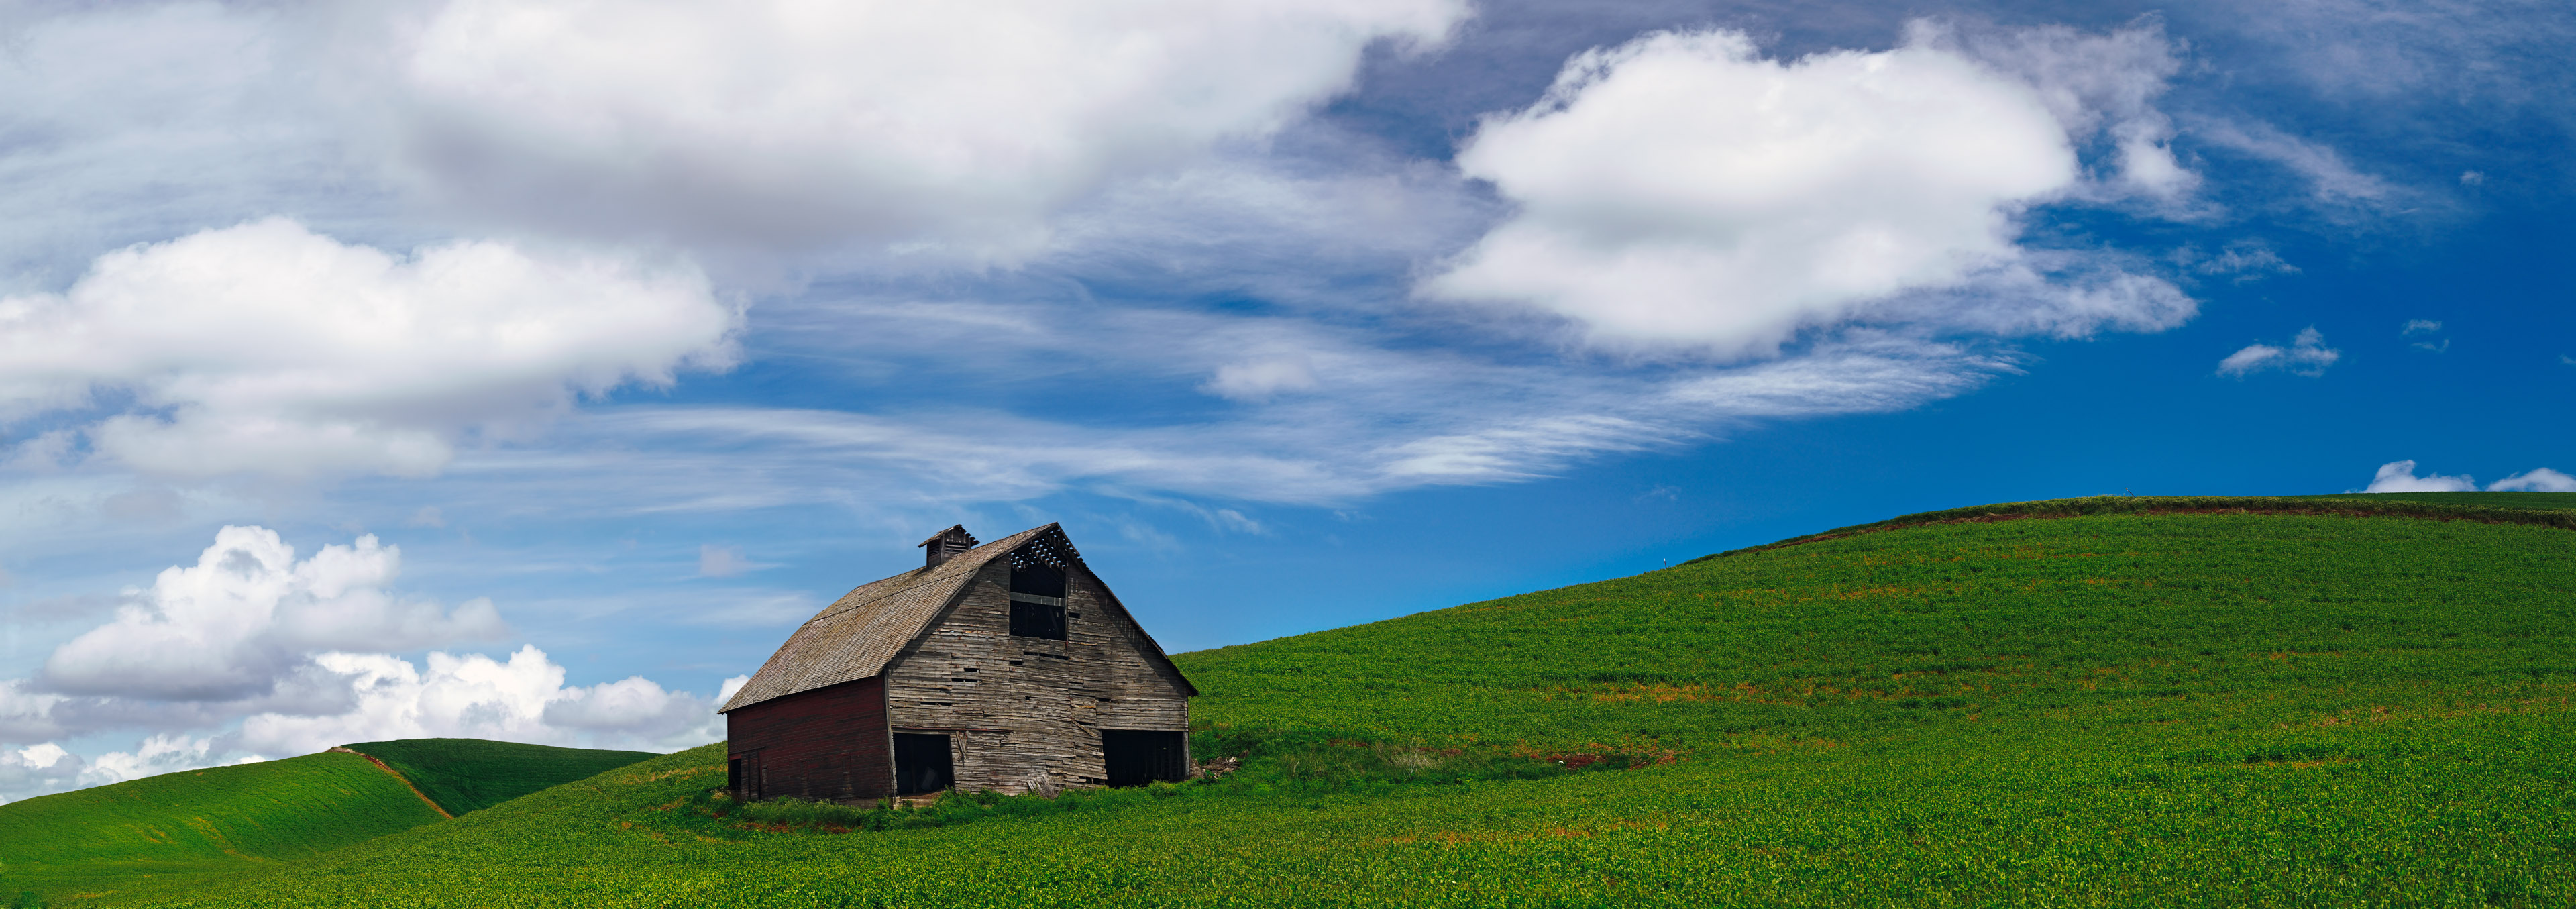 Gil's Barn, Palouse region of Southeast Washington